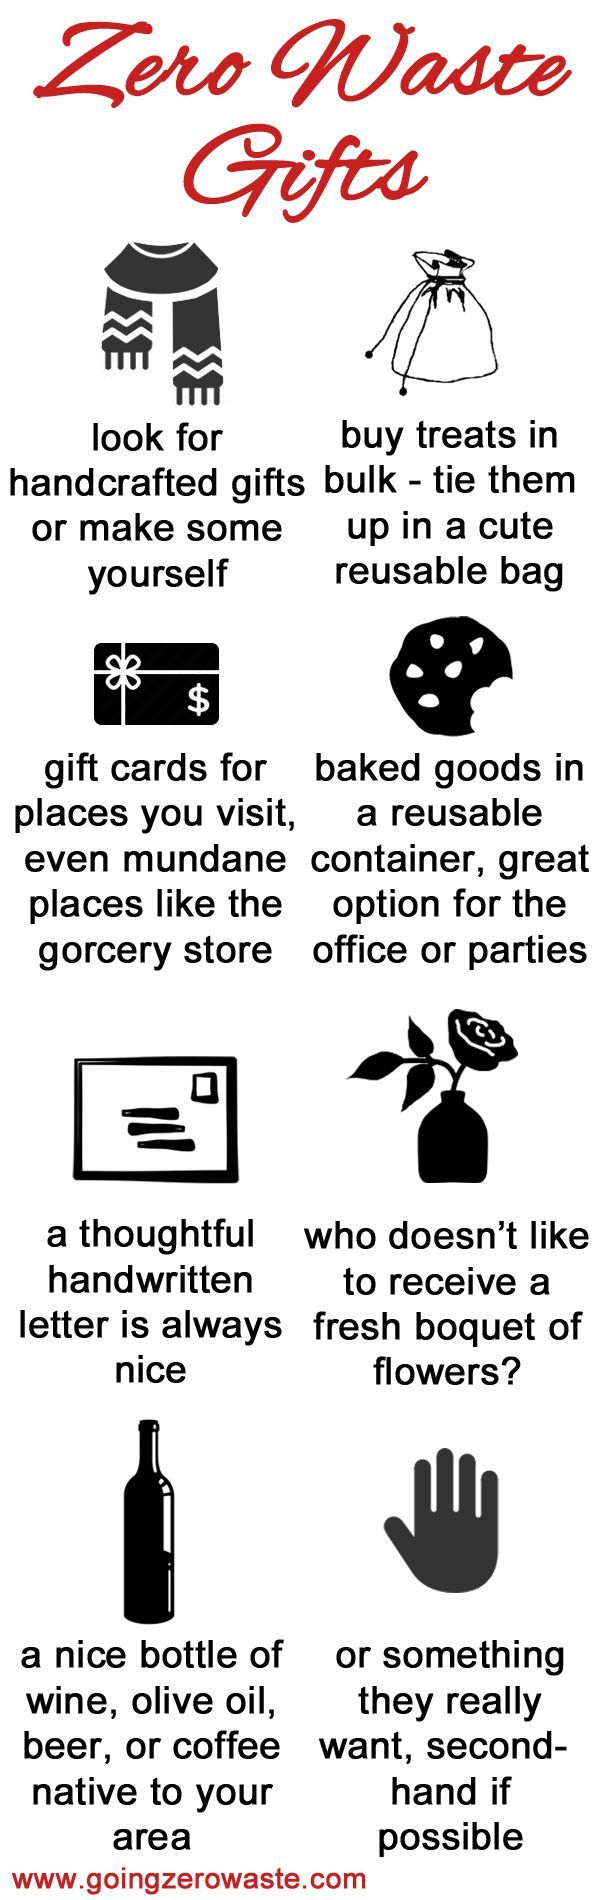 Zero waste Christmas gift giving guide from www.goingzerowaste.com